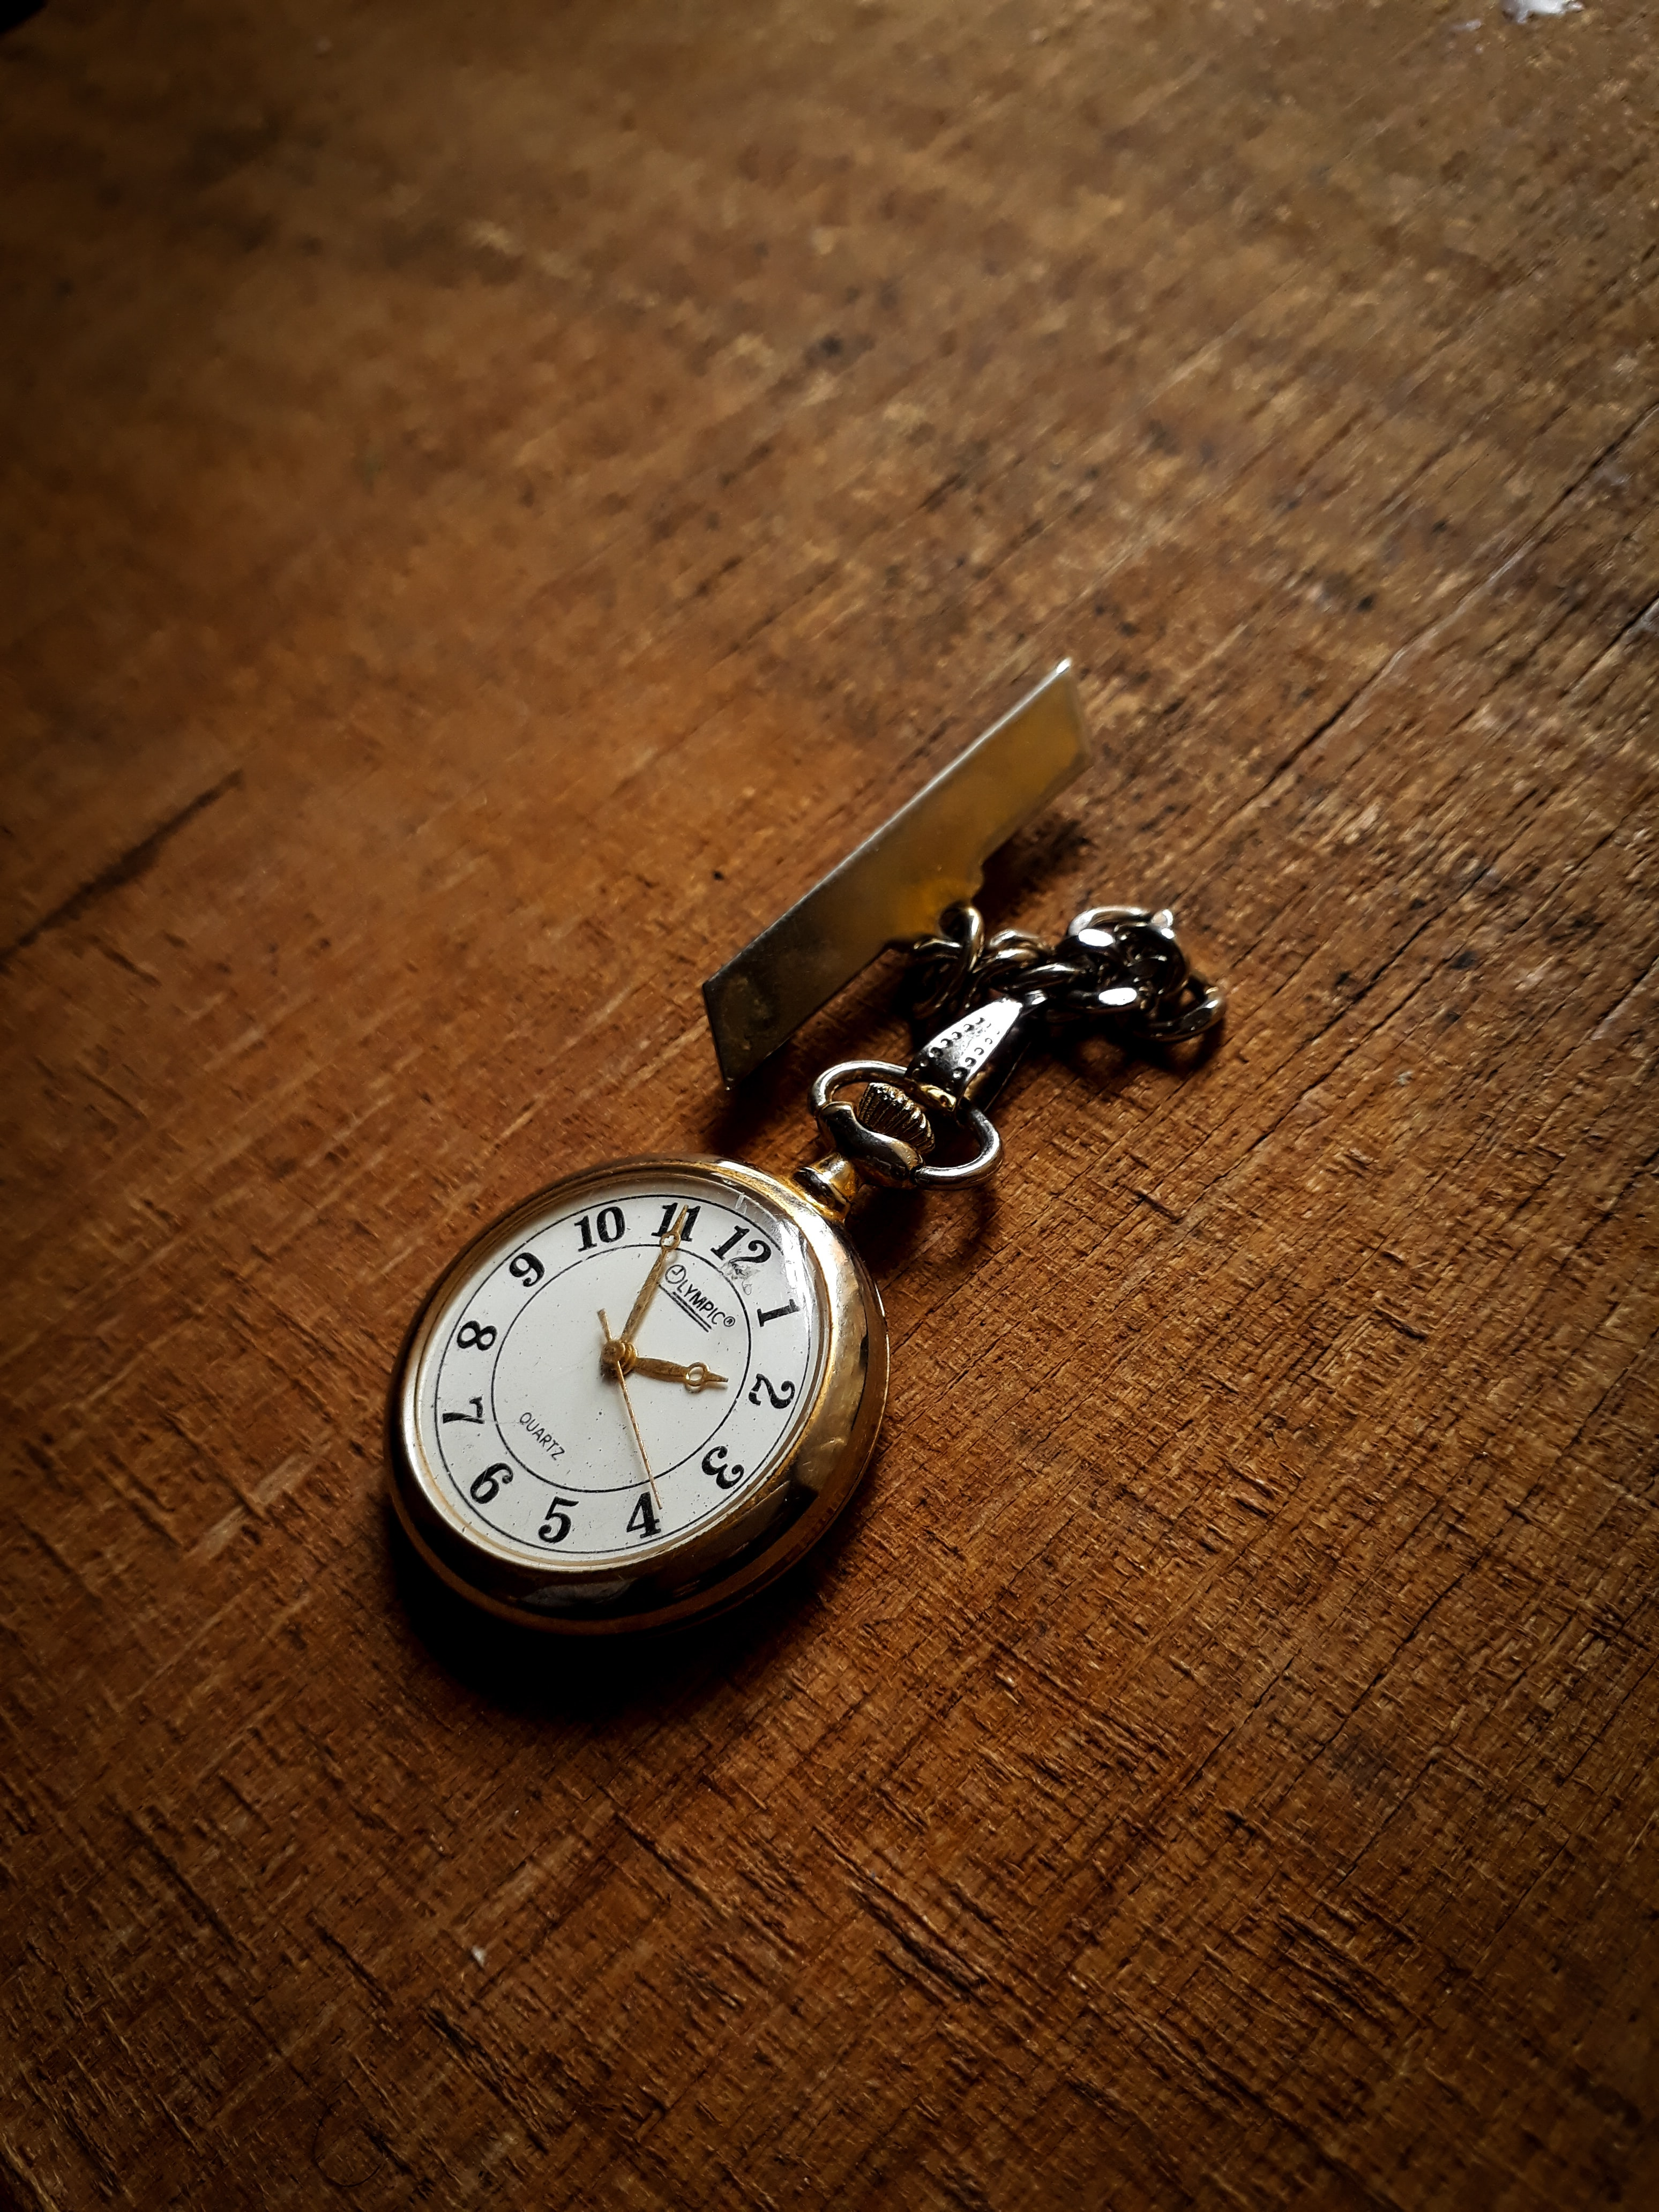 round gold-colored pocketwatch at 2:55